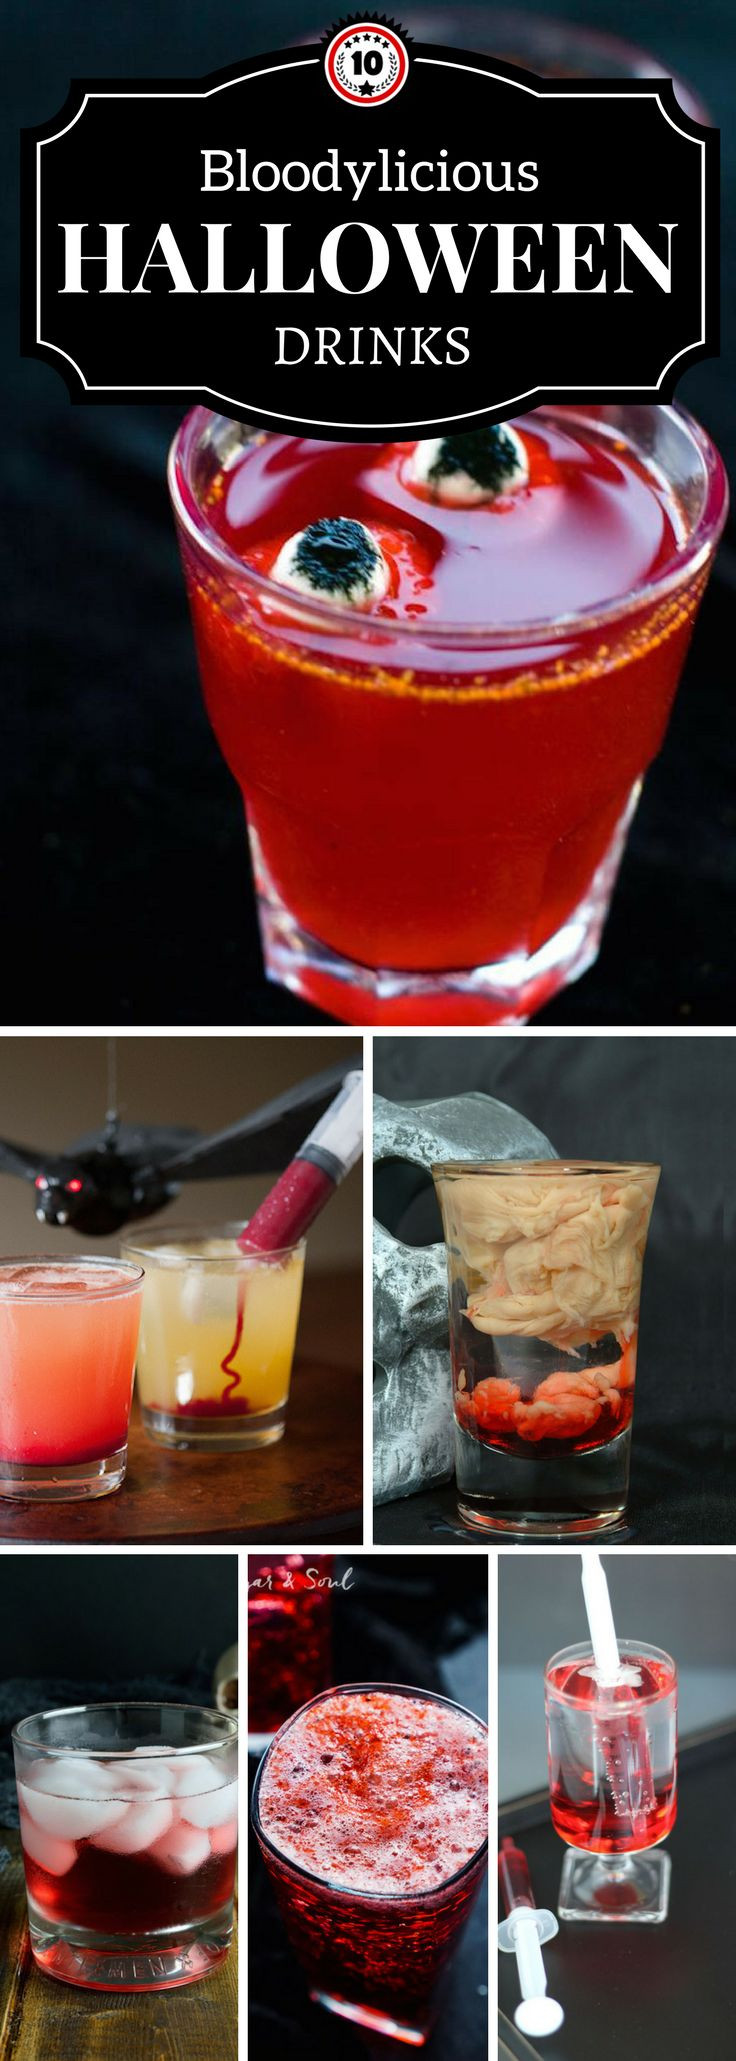 Halloween Alcohol Drinks  Best 25 Halloween drinks ideas on Pinterest